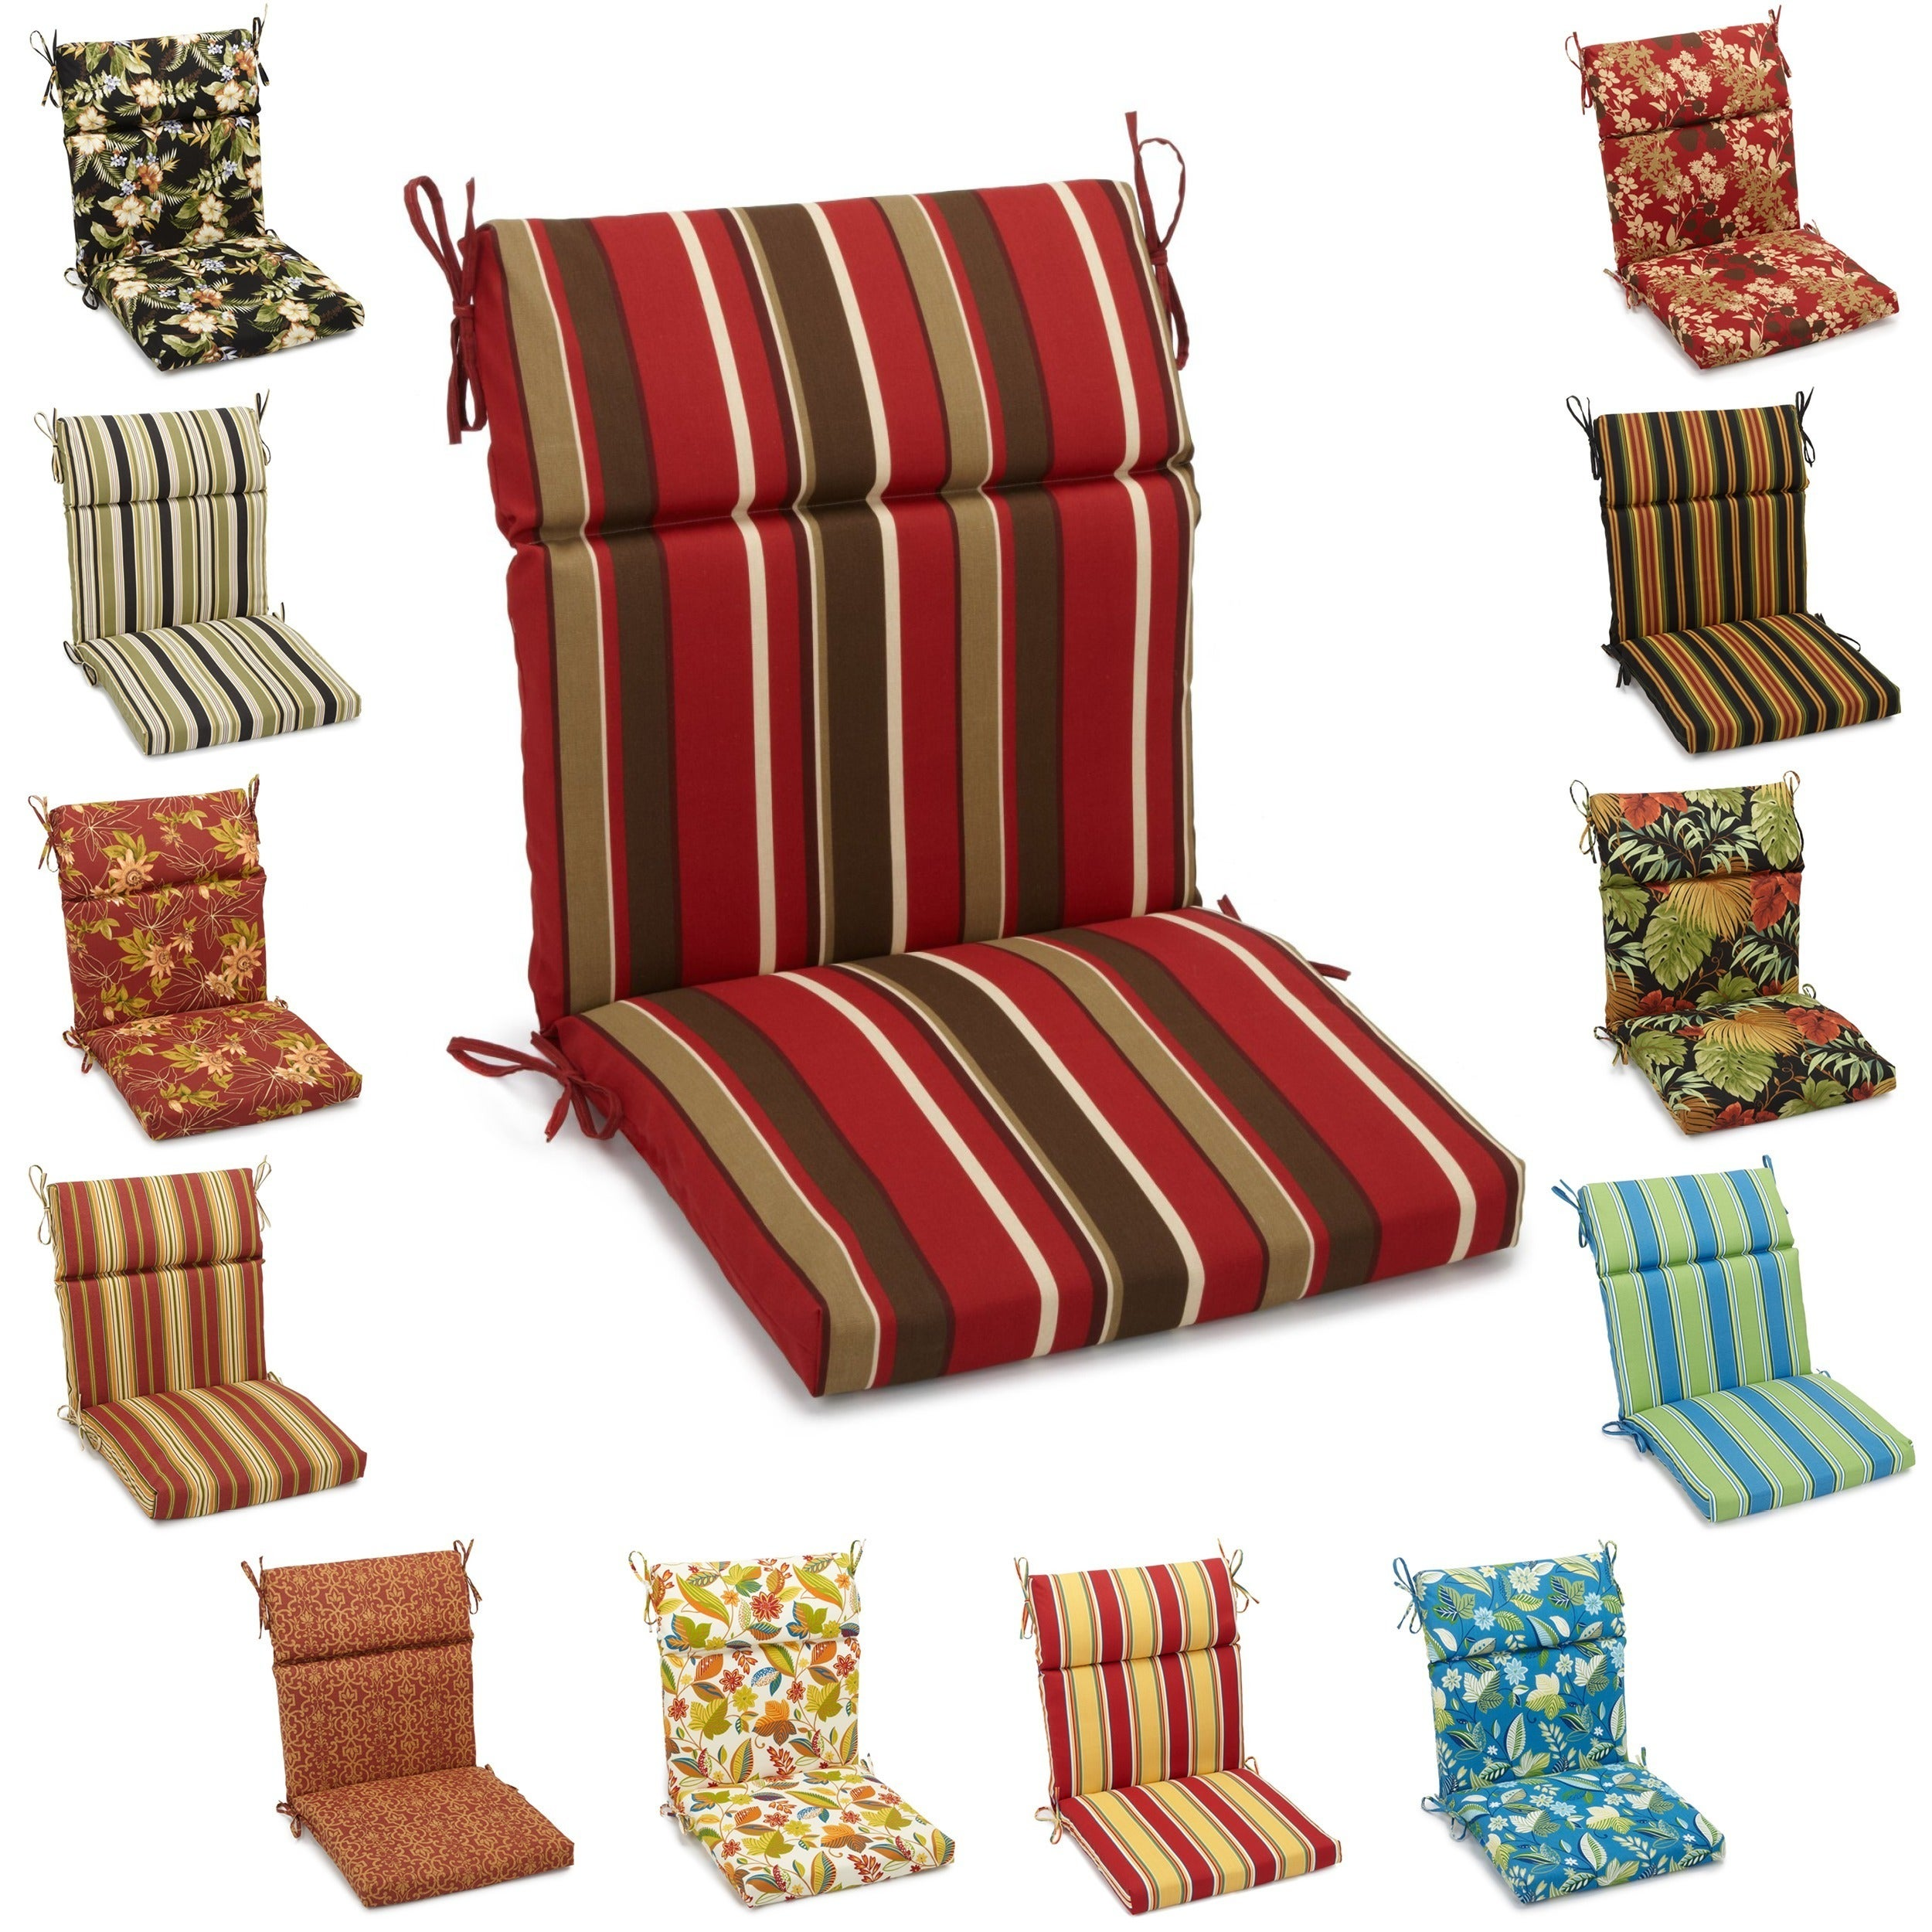 Swell Buy Outdoor Cushions Pillows Online At Overstock Our Interior Design Ideas Inesswwsoteloinfo